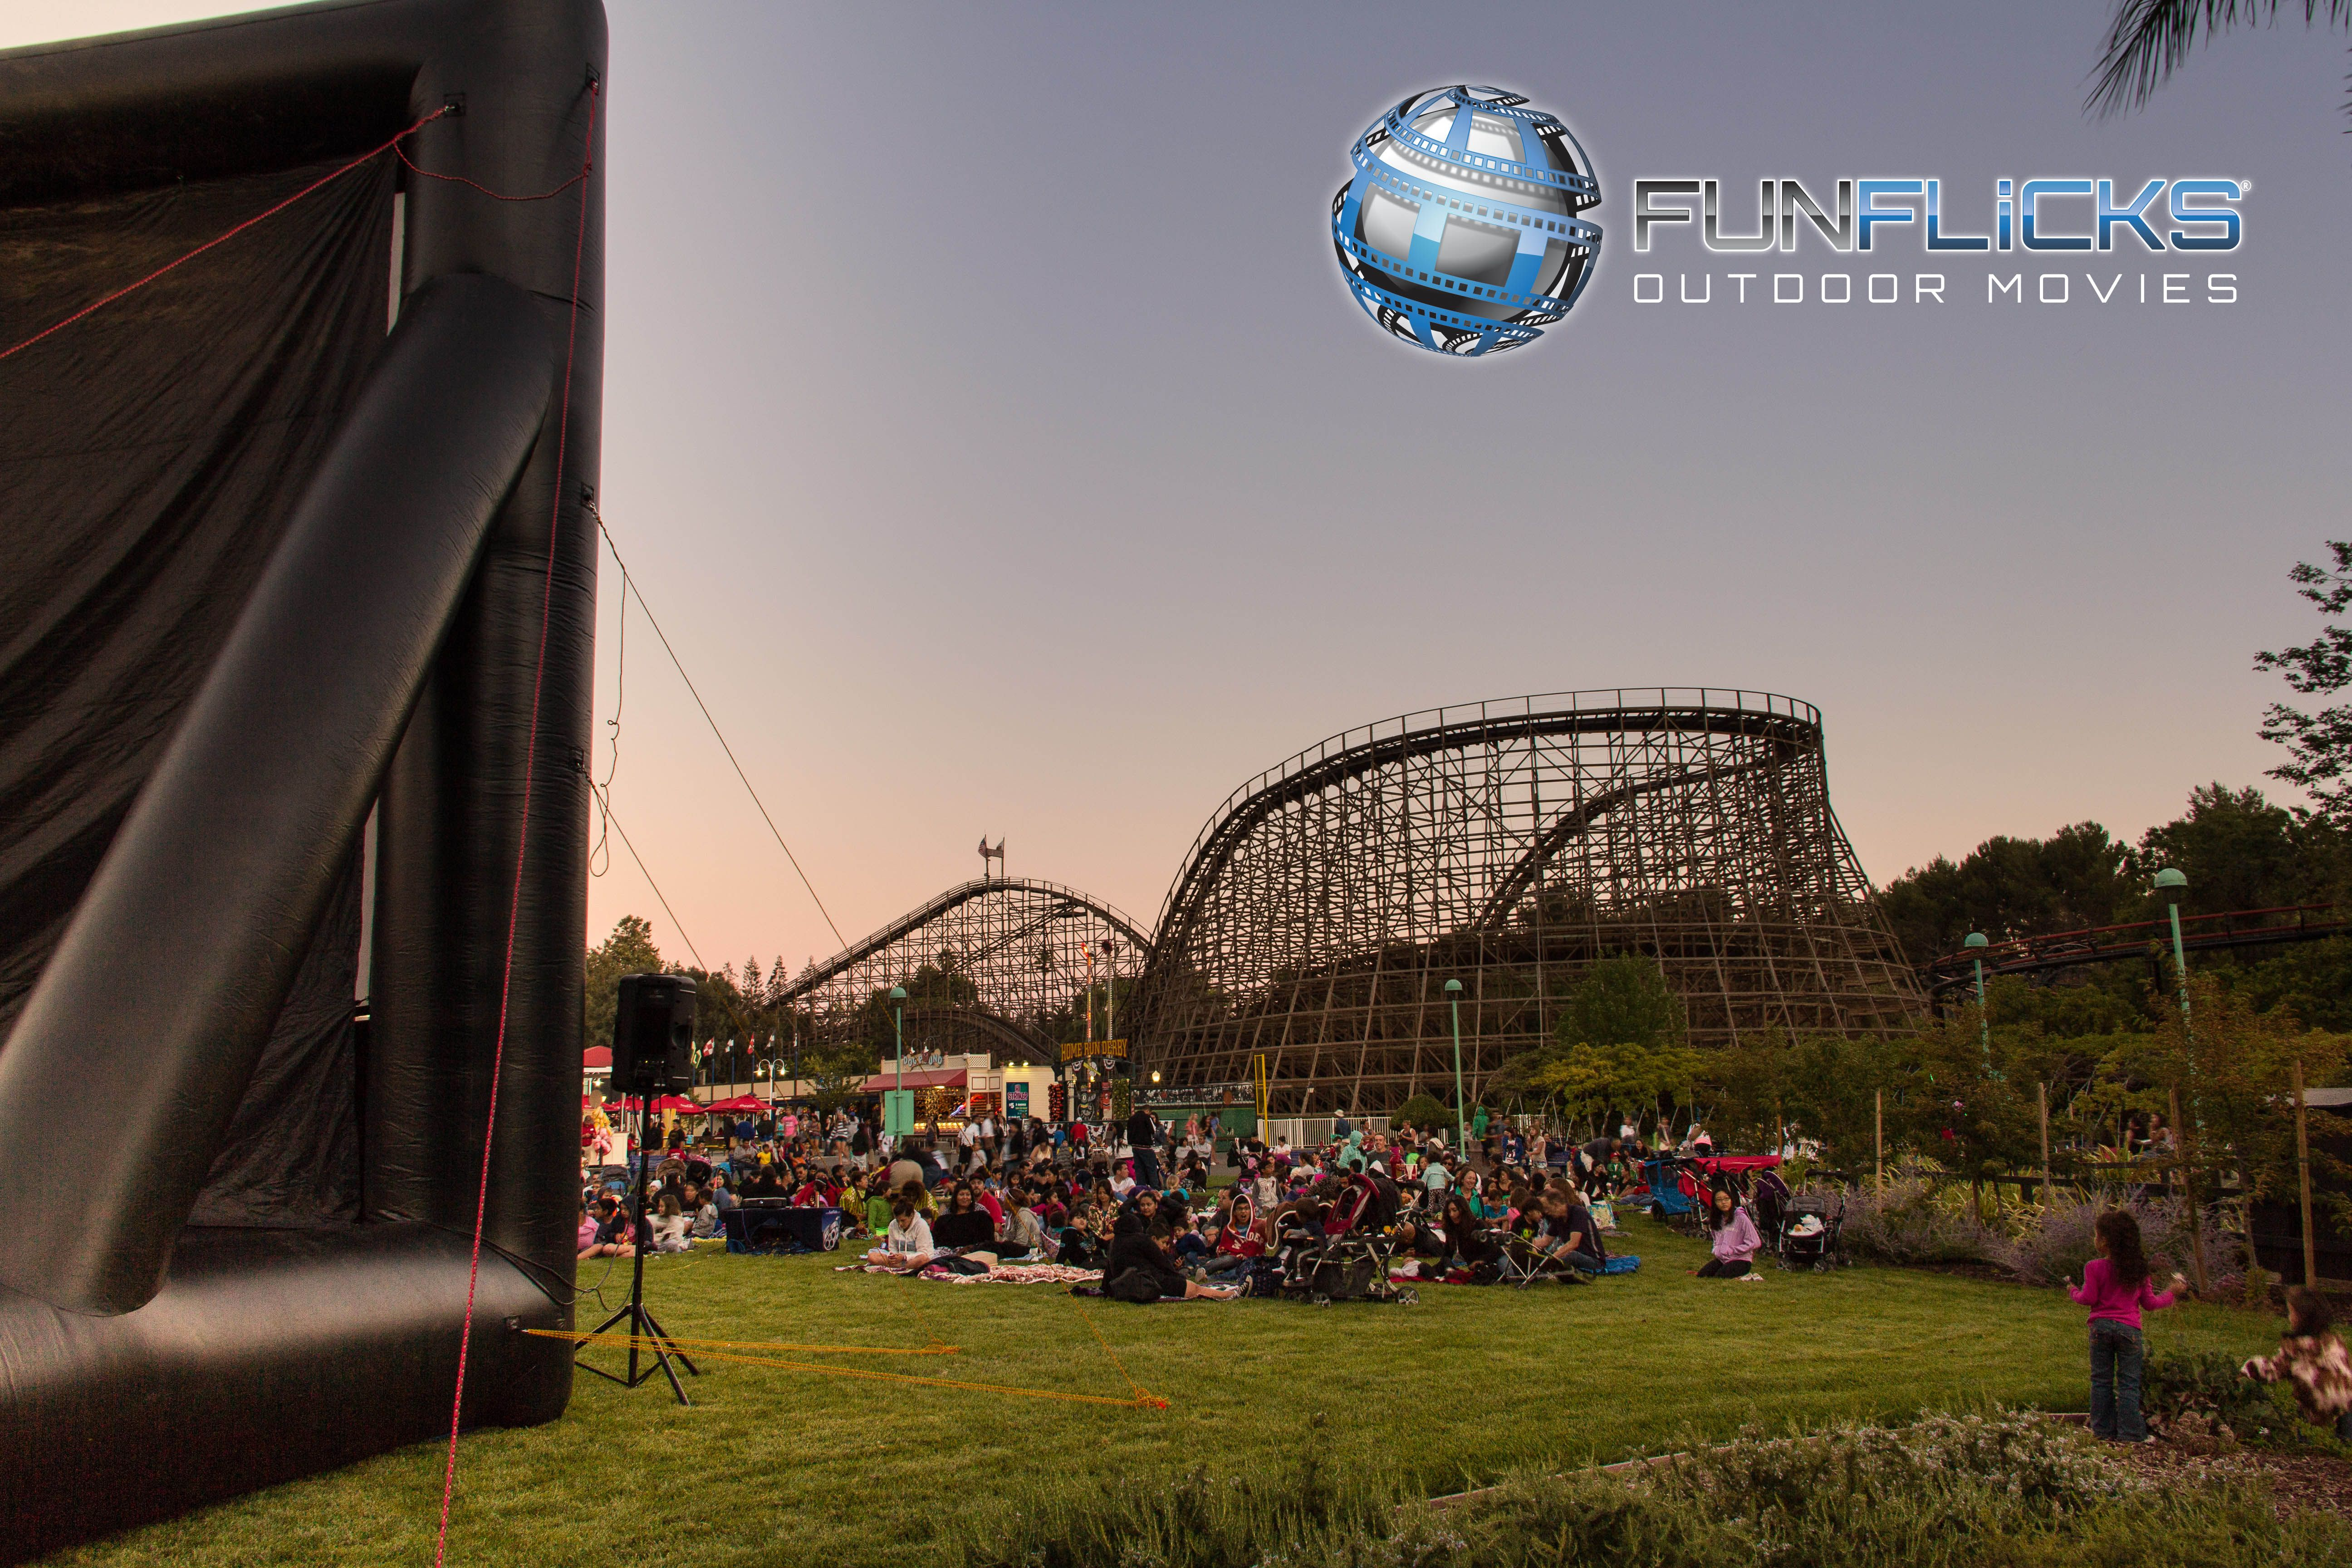 Outdoor Movies At The Park Outdoormovies Funflicks